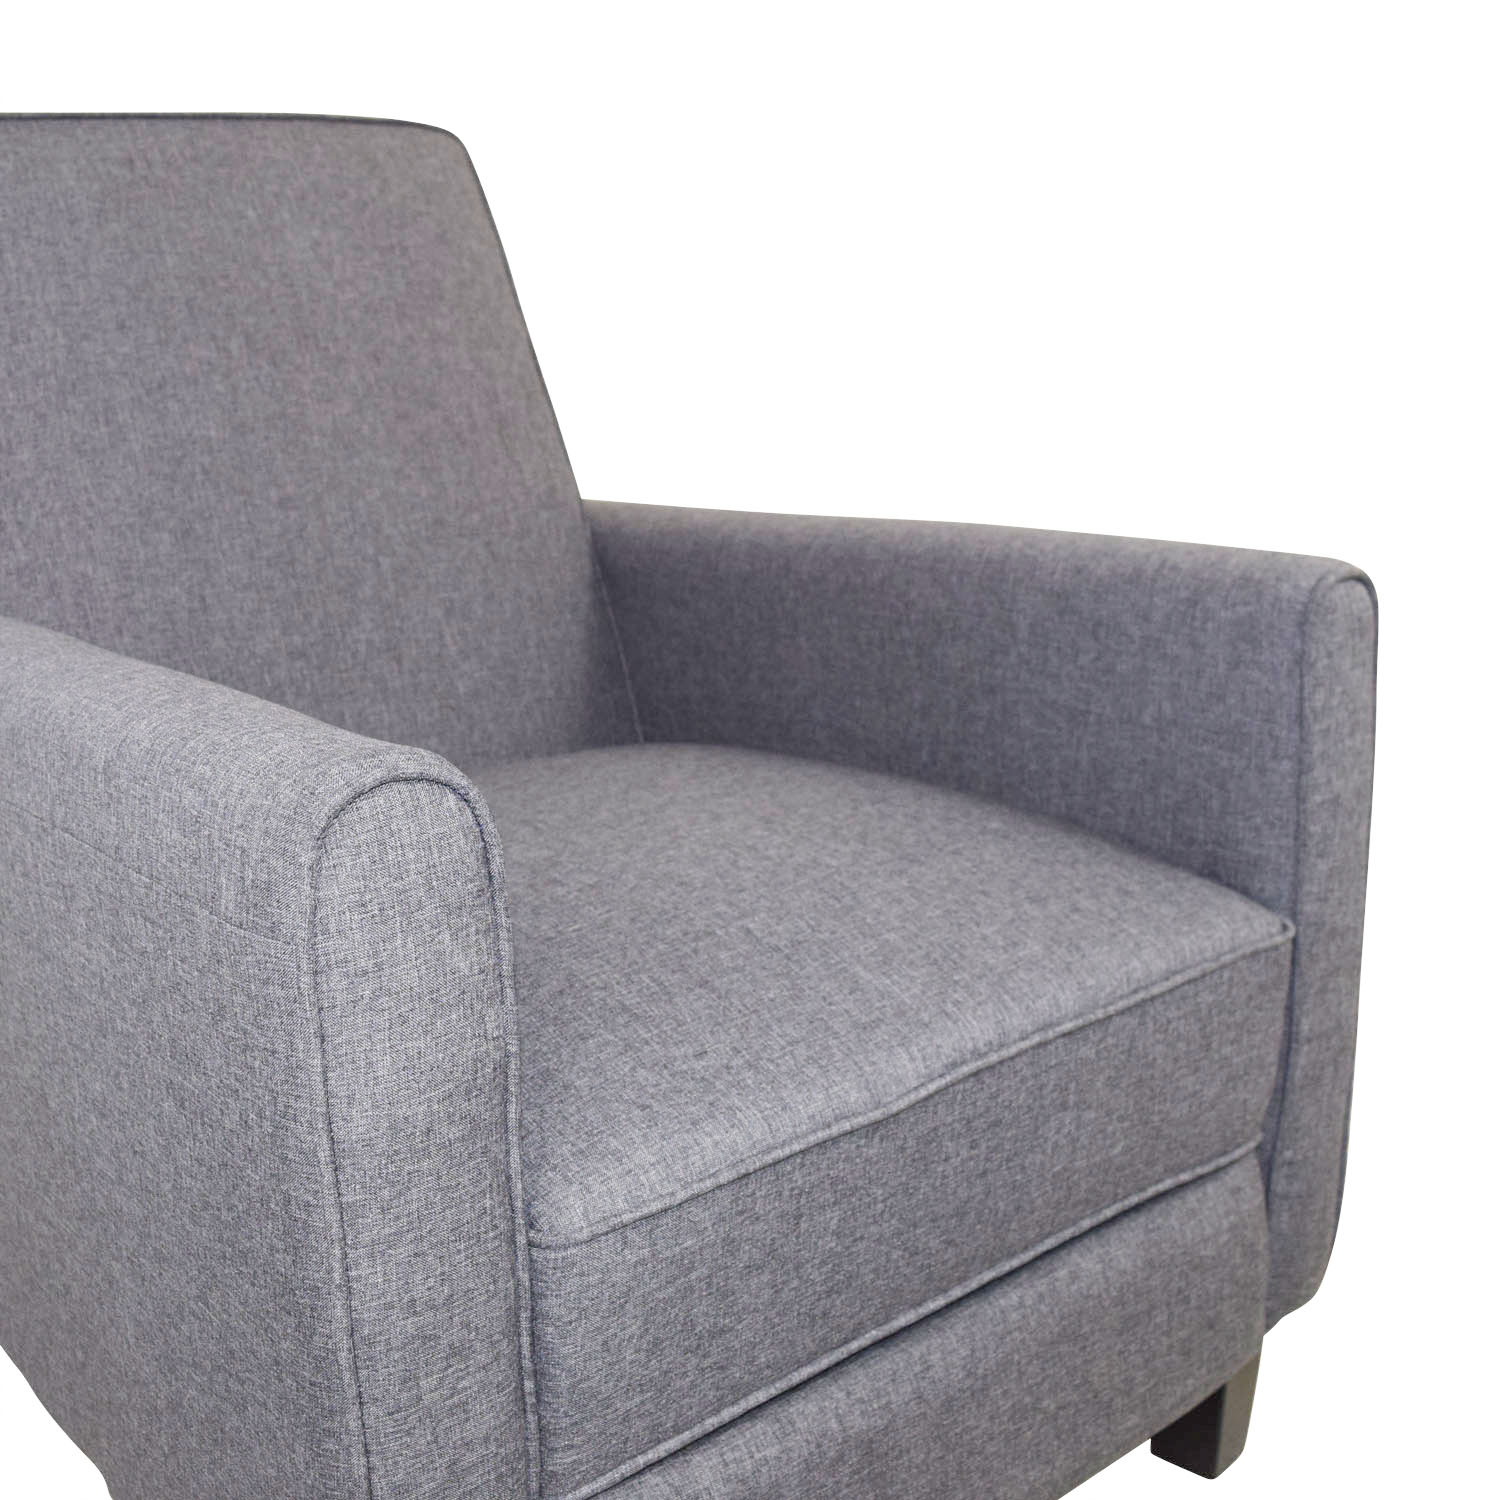 Christopher Knight Home Christopher Knight Home Darvis Grey Recliner Club Chair Recliners